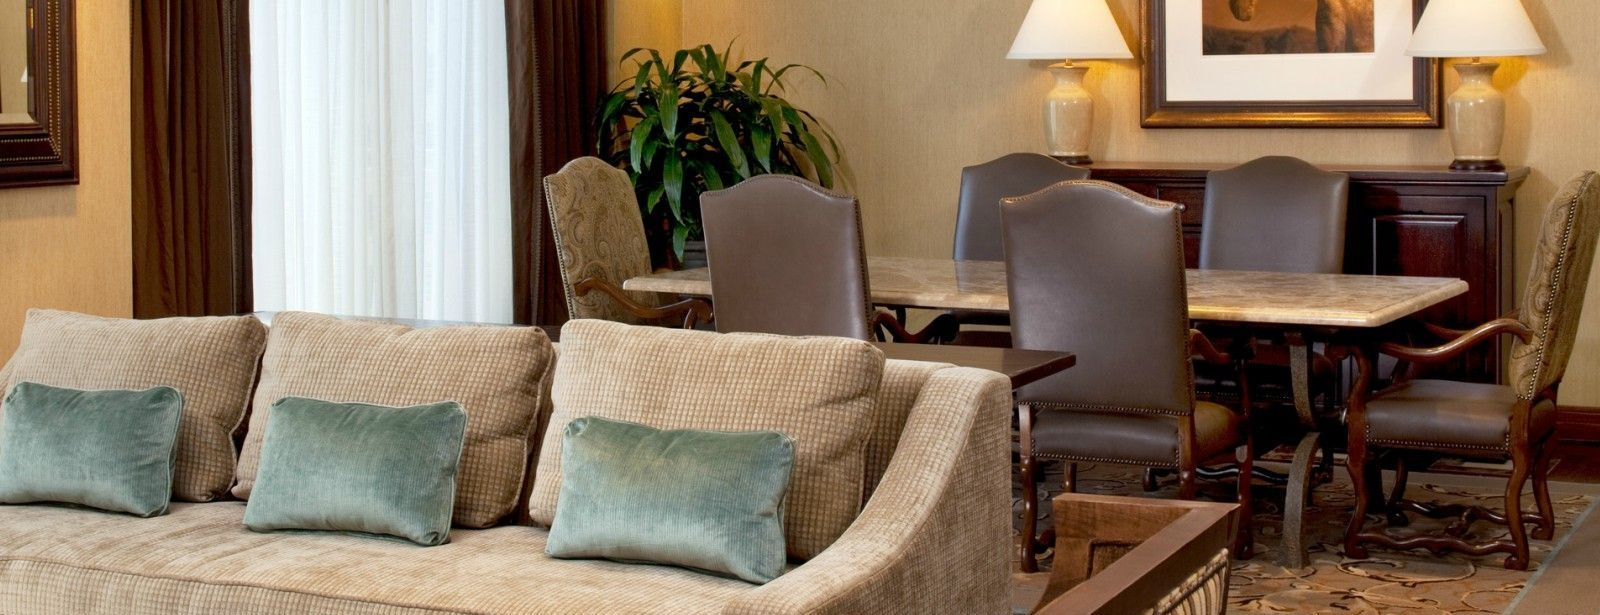 Luxury Suite Parlor - The Westin Riverwalk, San Antonio